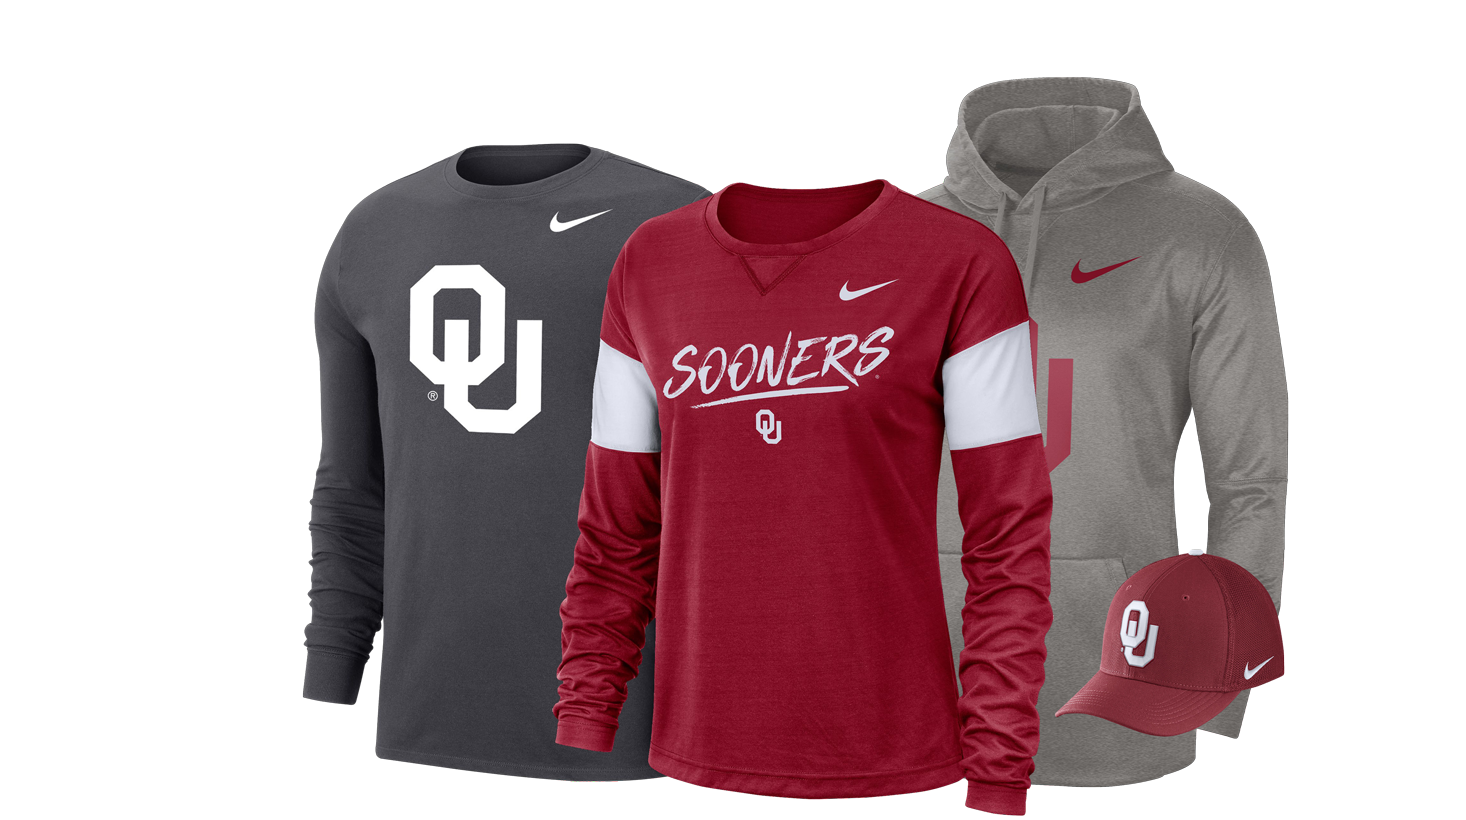 online store 76337 f8e84 Oklahoma Sooners Apparel | OU Gear, Merchandise & Gifts